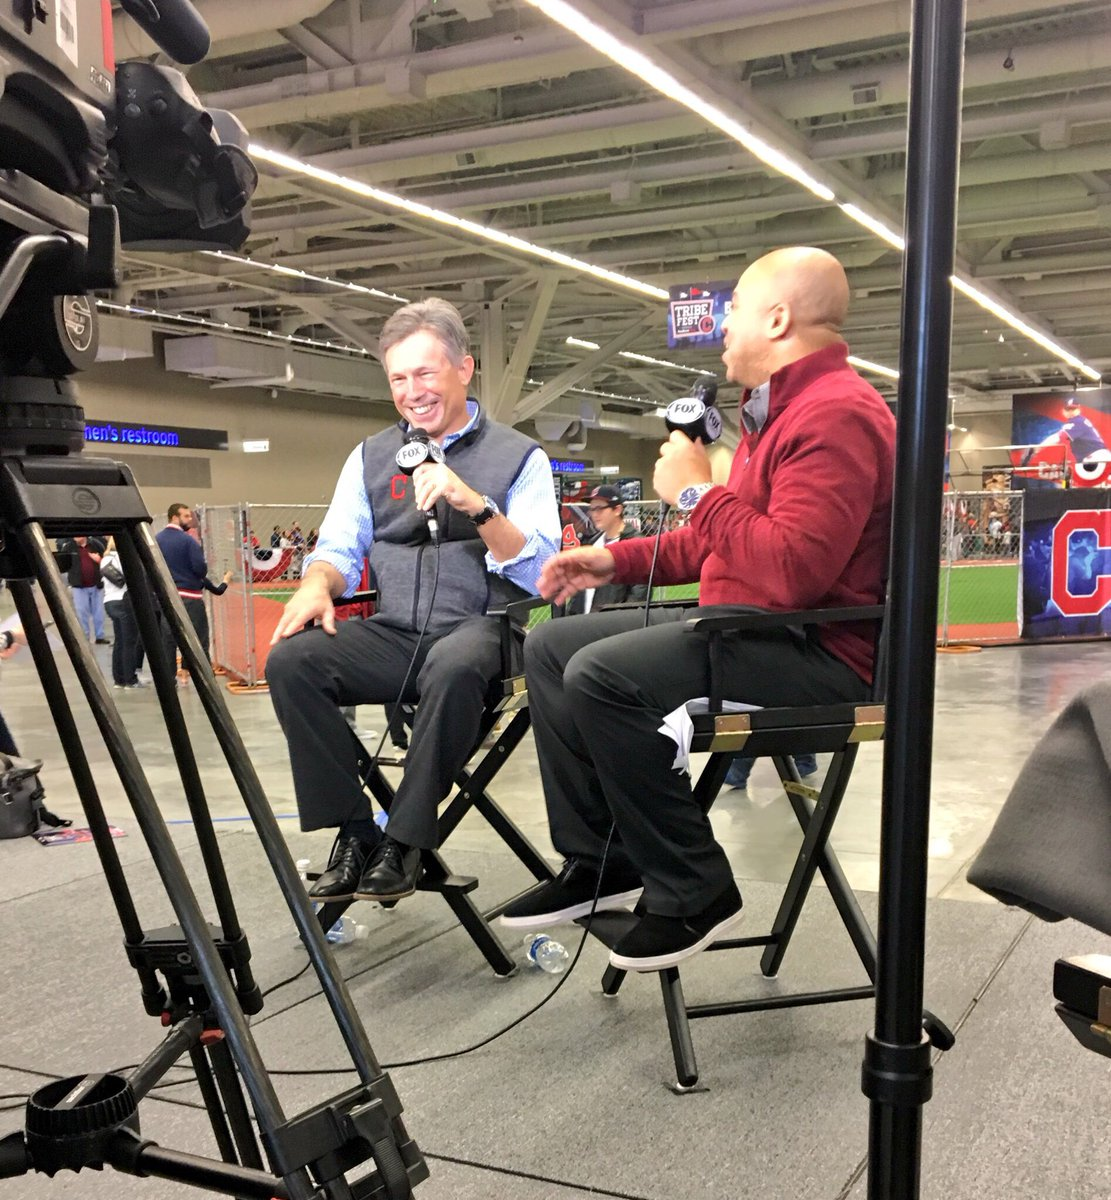 .@DreKnott and Indians owner Paul Dolan chatting on @FOXSportsOH. #TribeFest https://t.co/iQqyQDNmAG